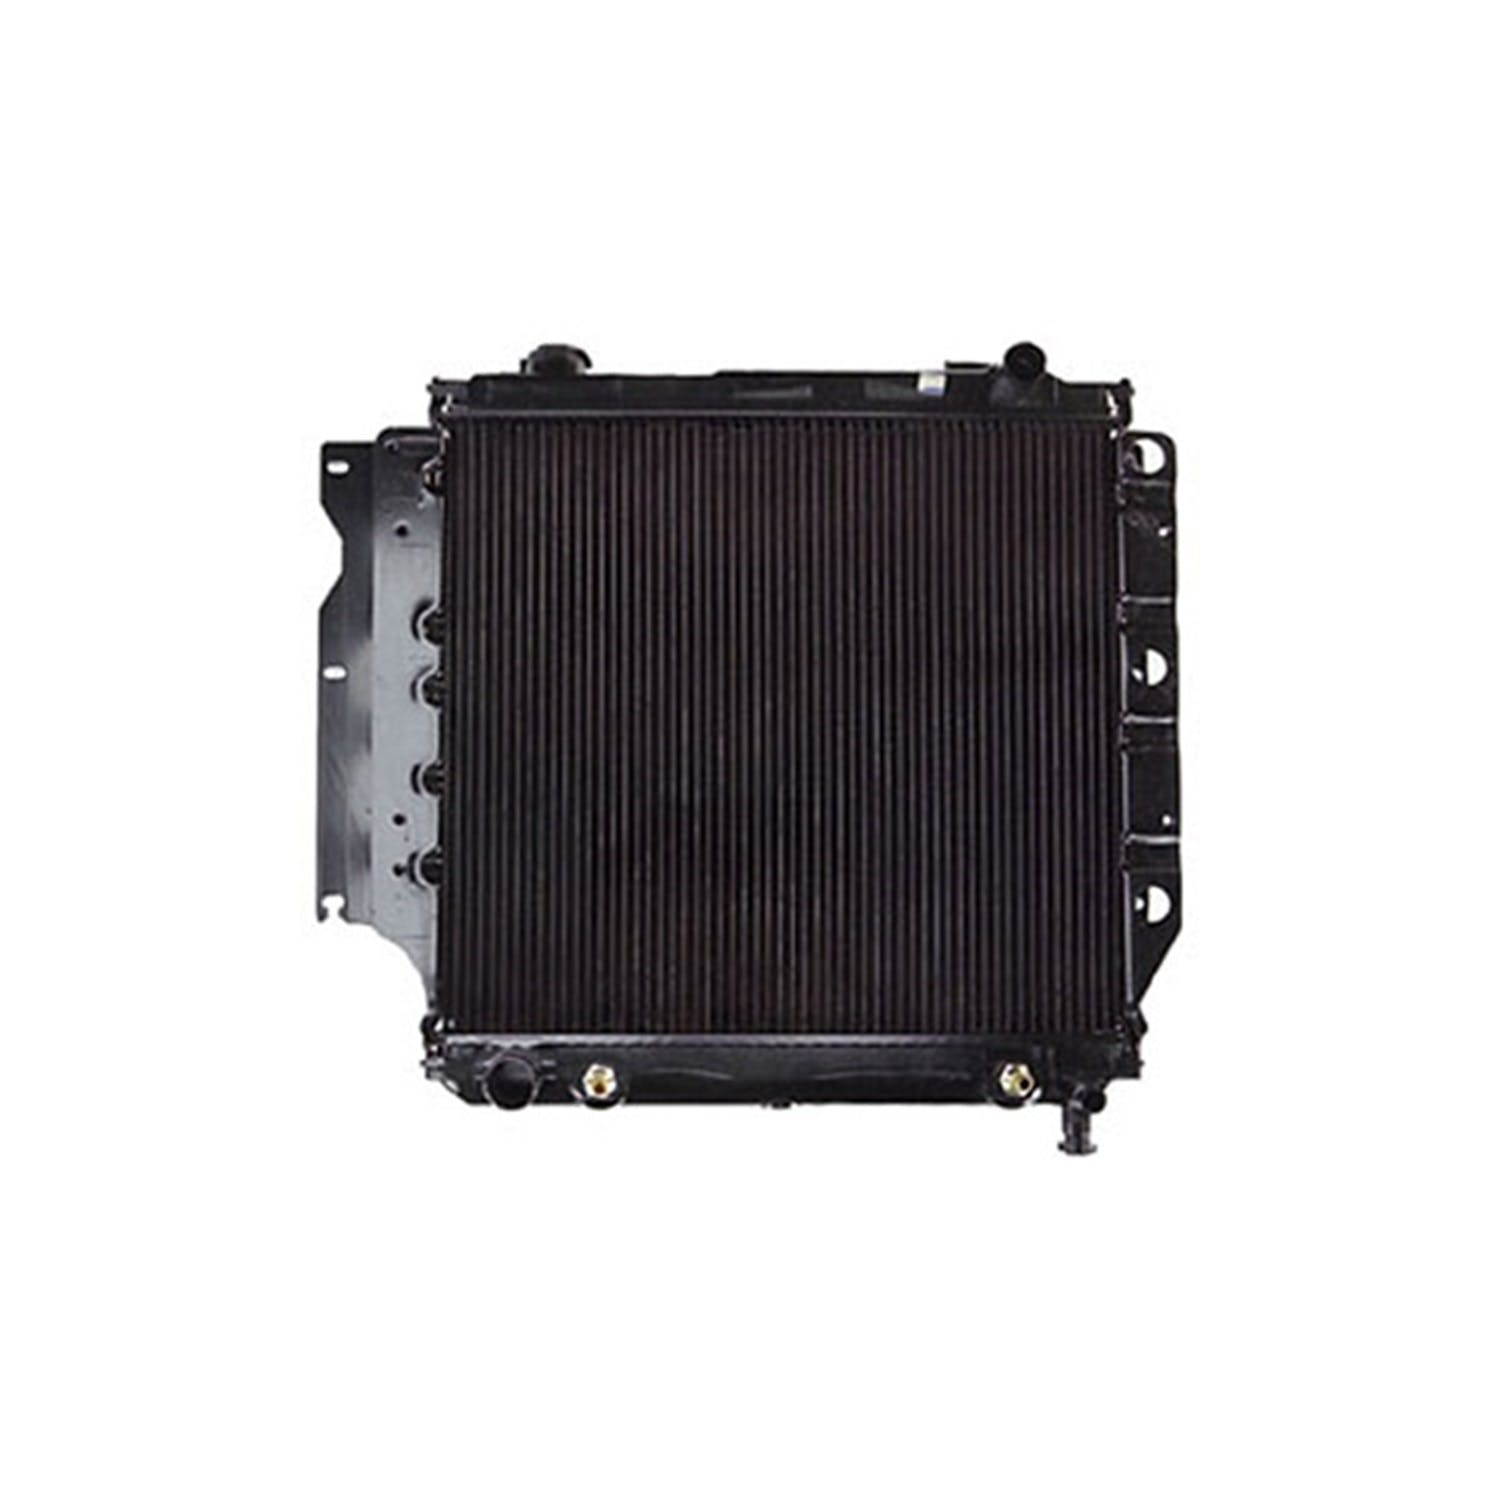 Rear for 2006-2010 Jeep Commander XK Omix-ADA 17952.12 AC Evaporator